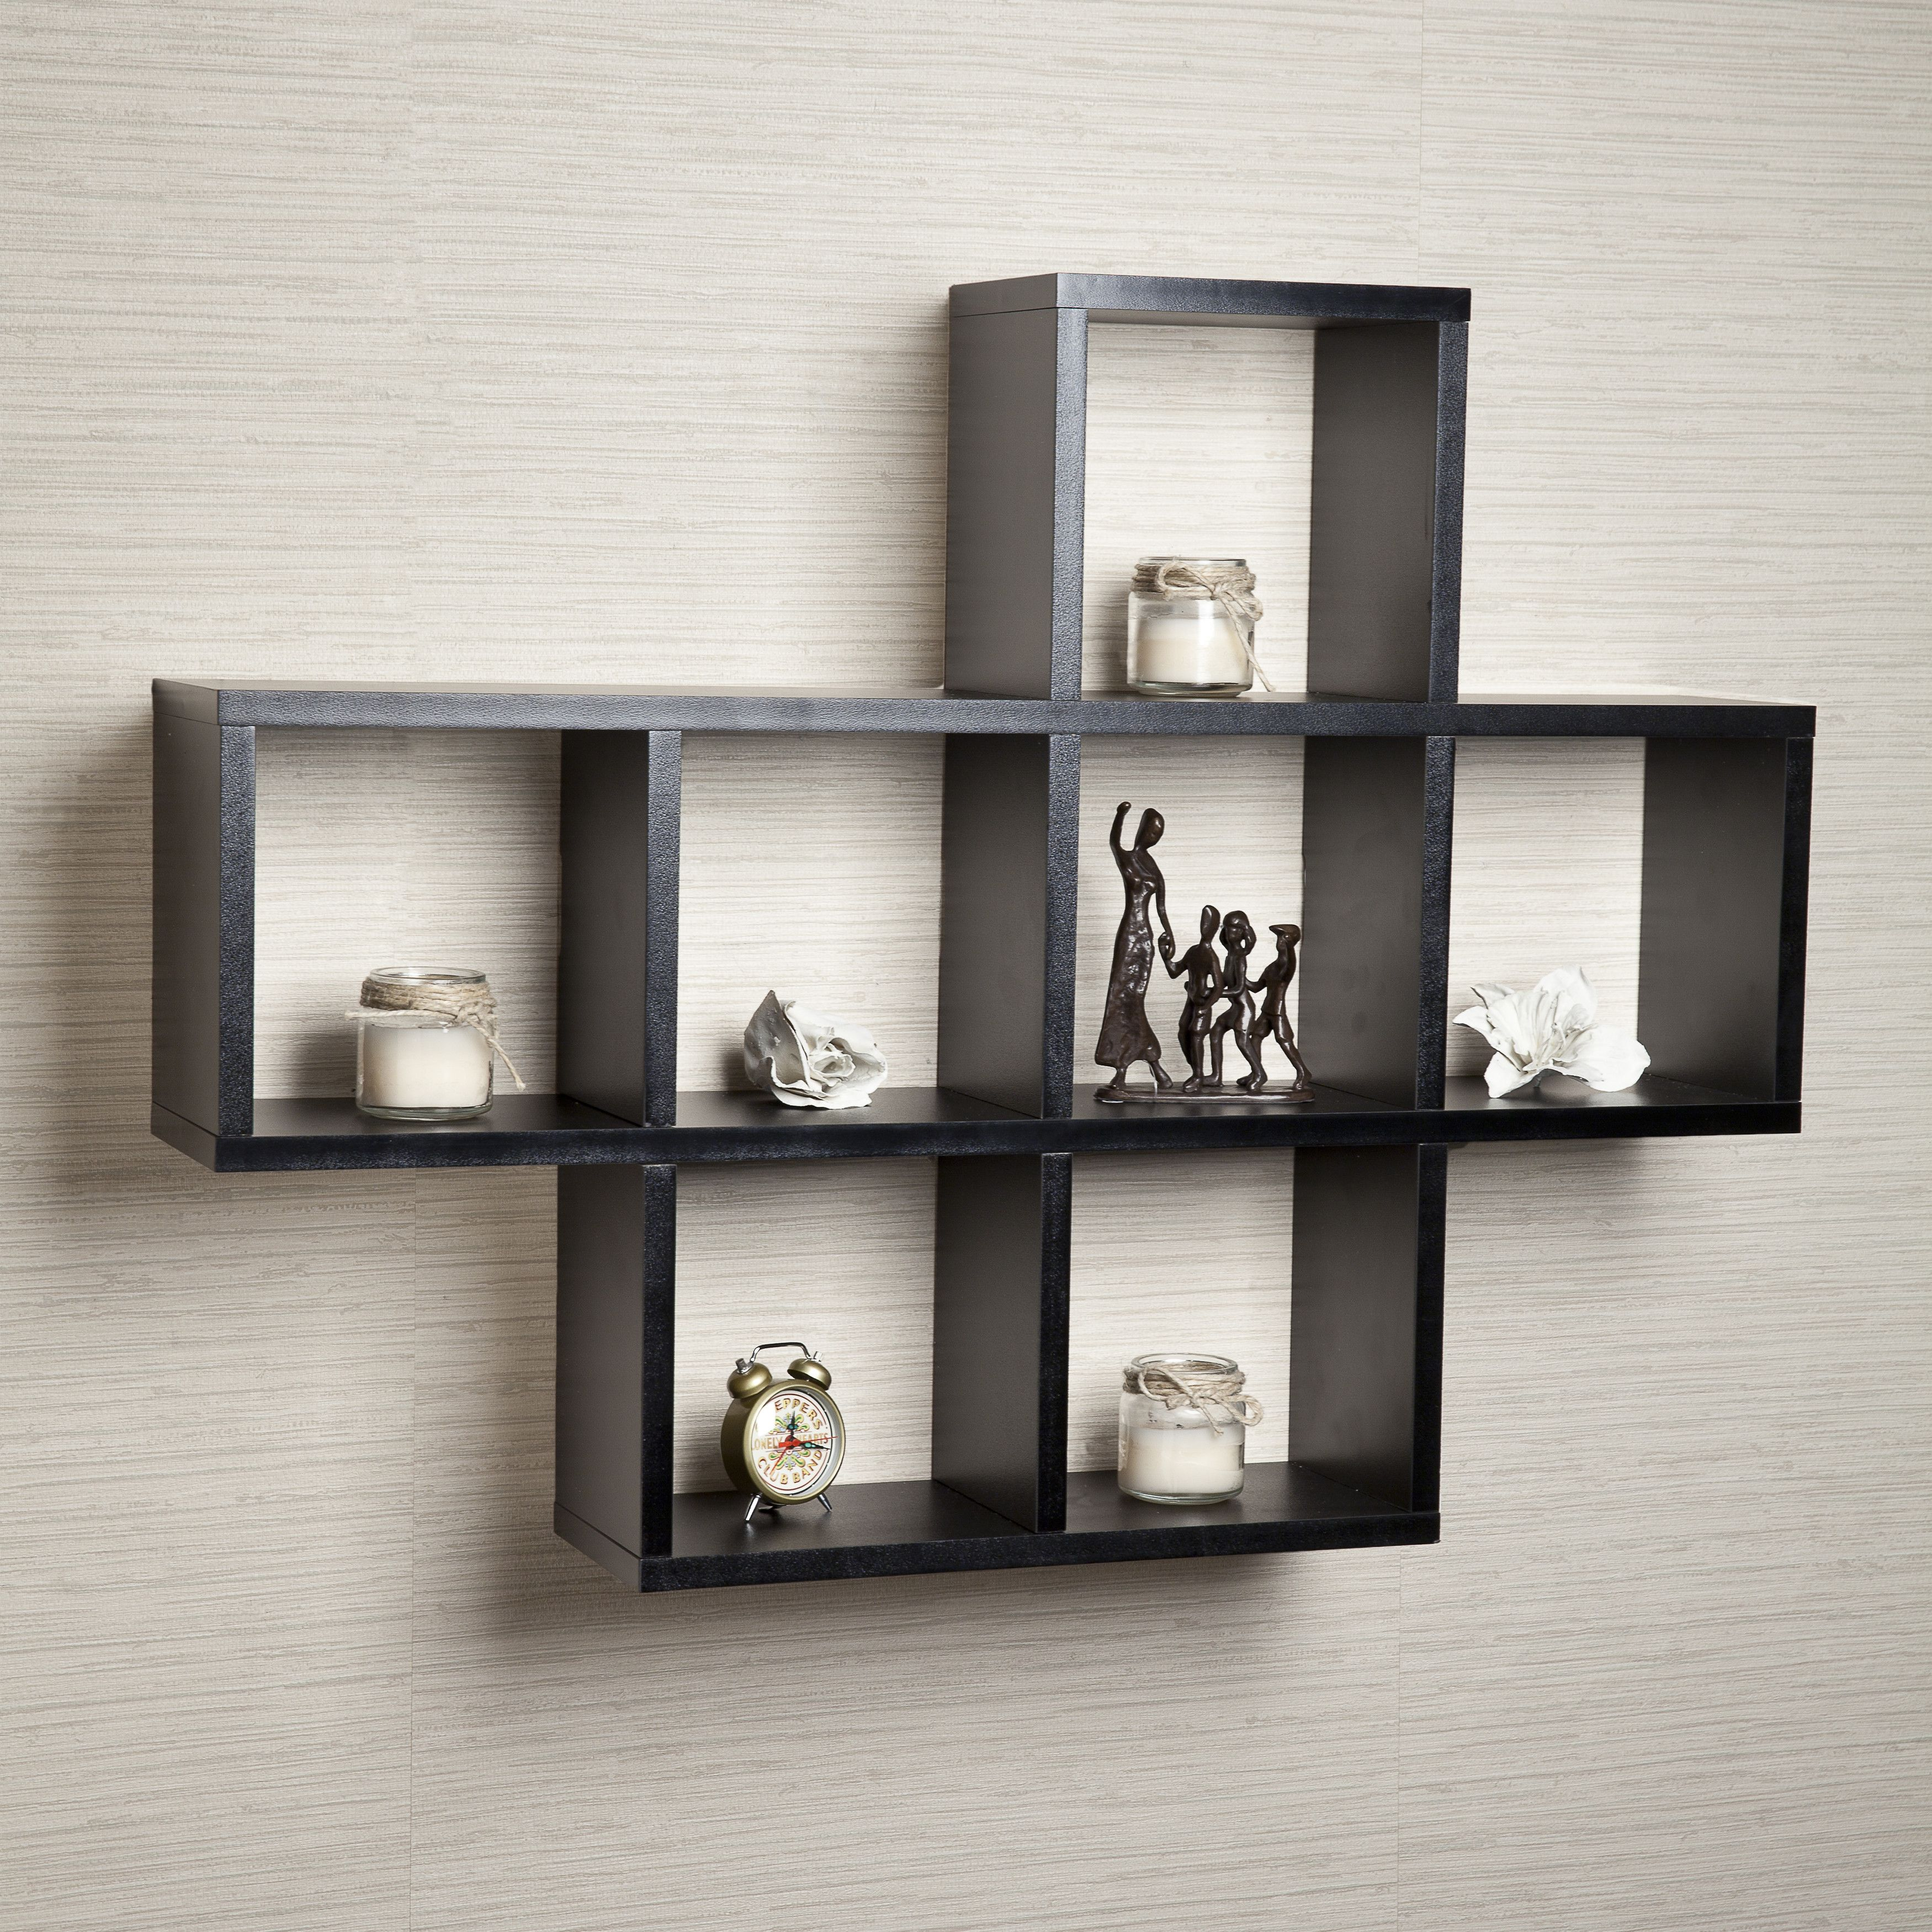 Cubby Wall Shelf | Home ideas | Pinterest | Shelves and Walls for modern corner wall unit  70ref